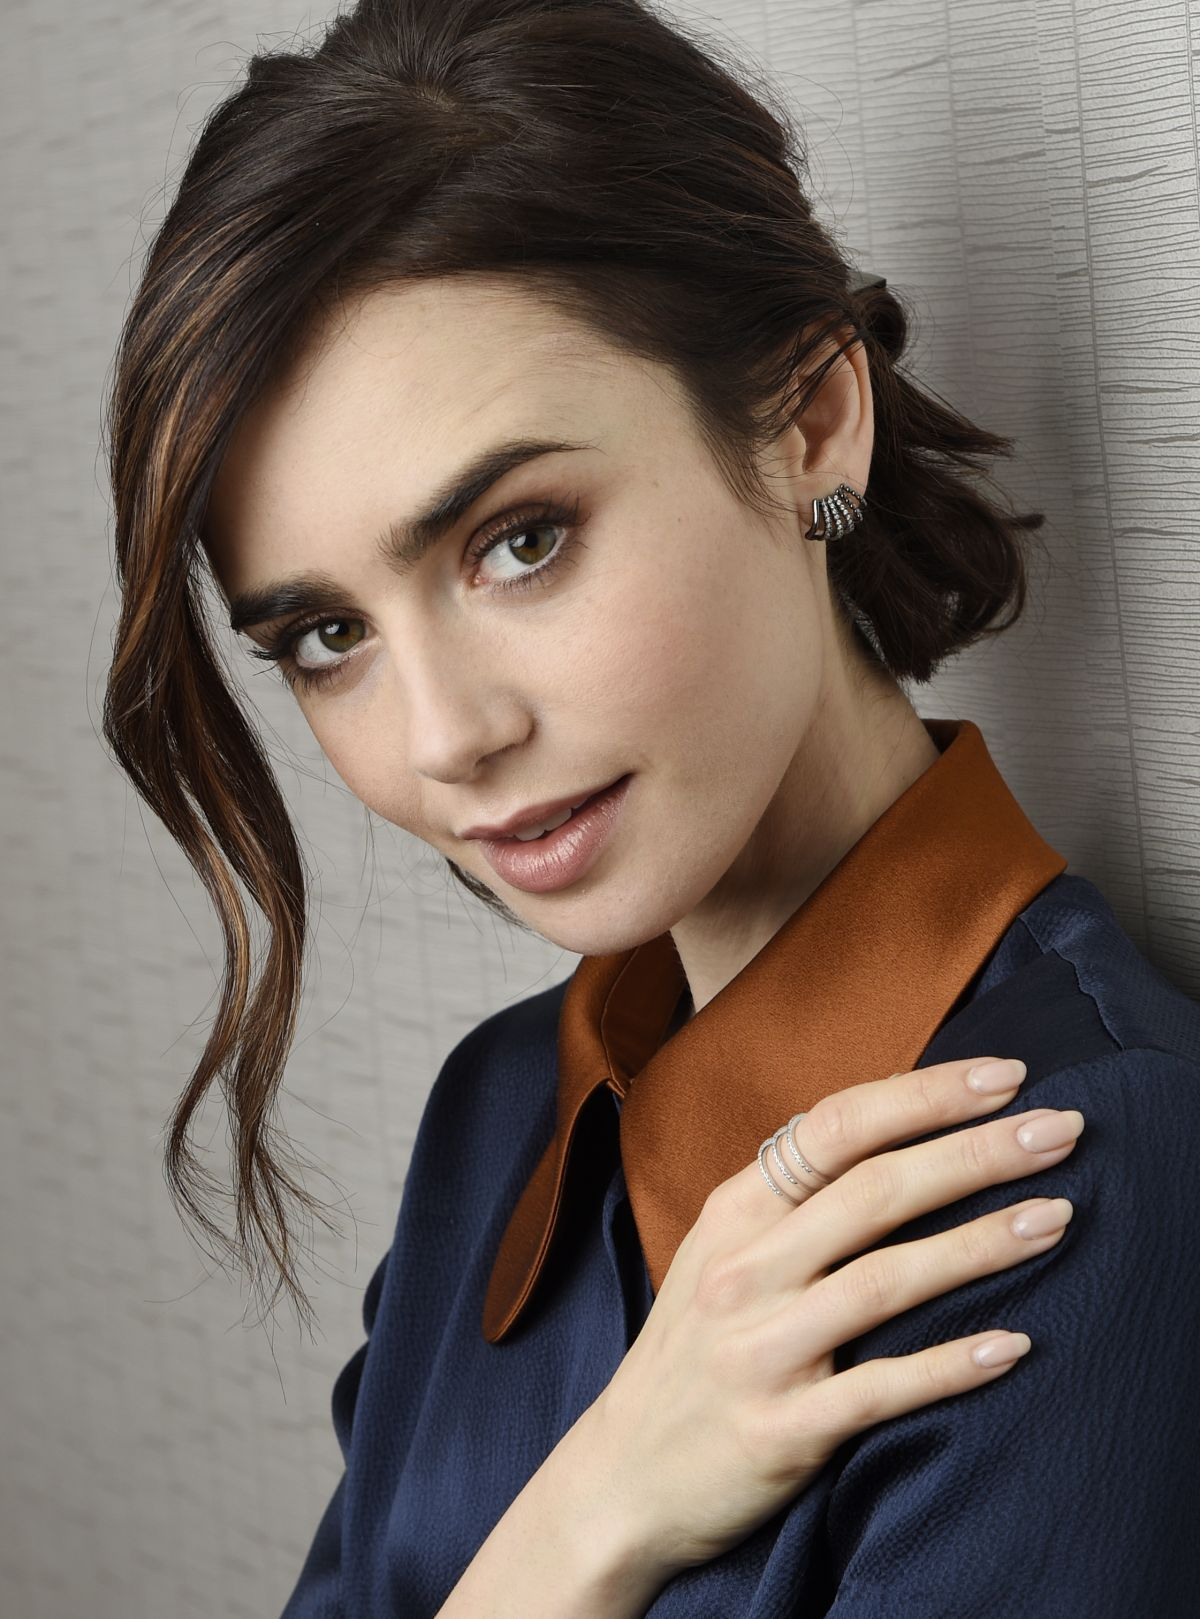 LILY COLLINS by Chris Pizzello fot The Associated Press, November 2016